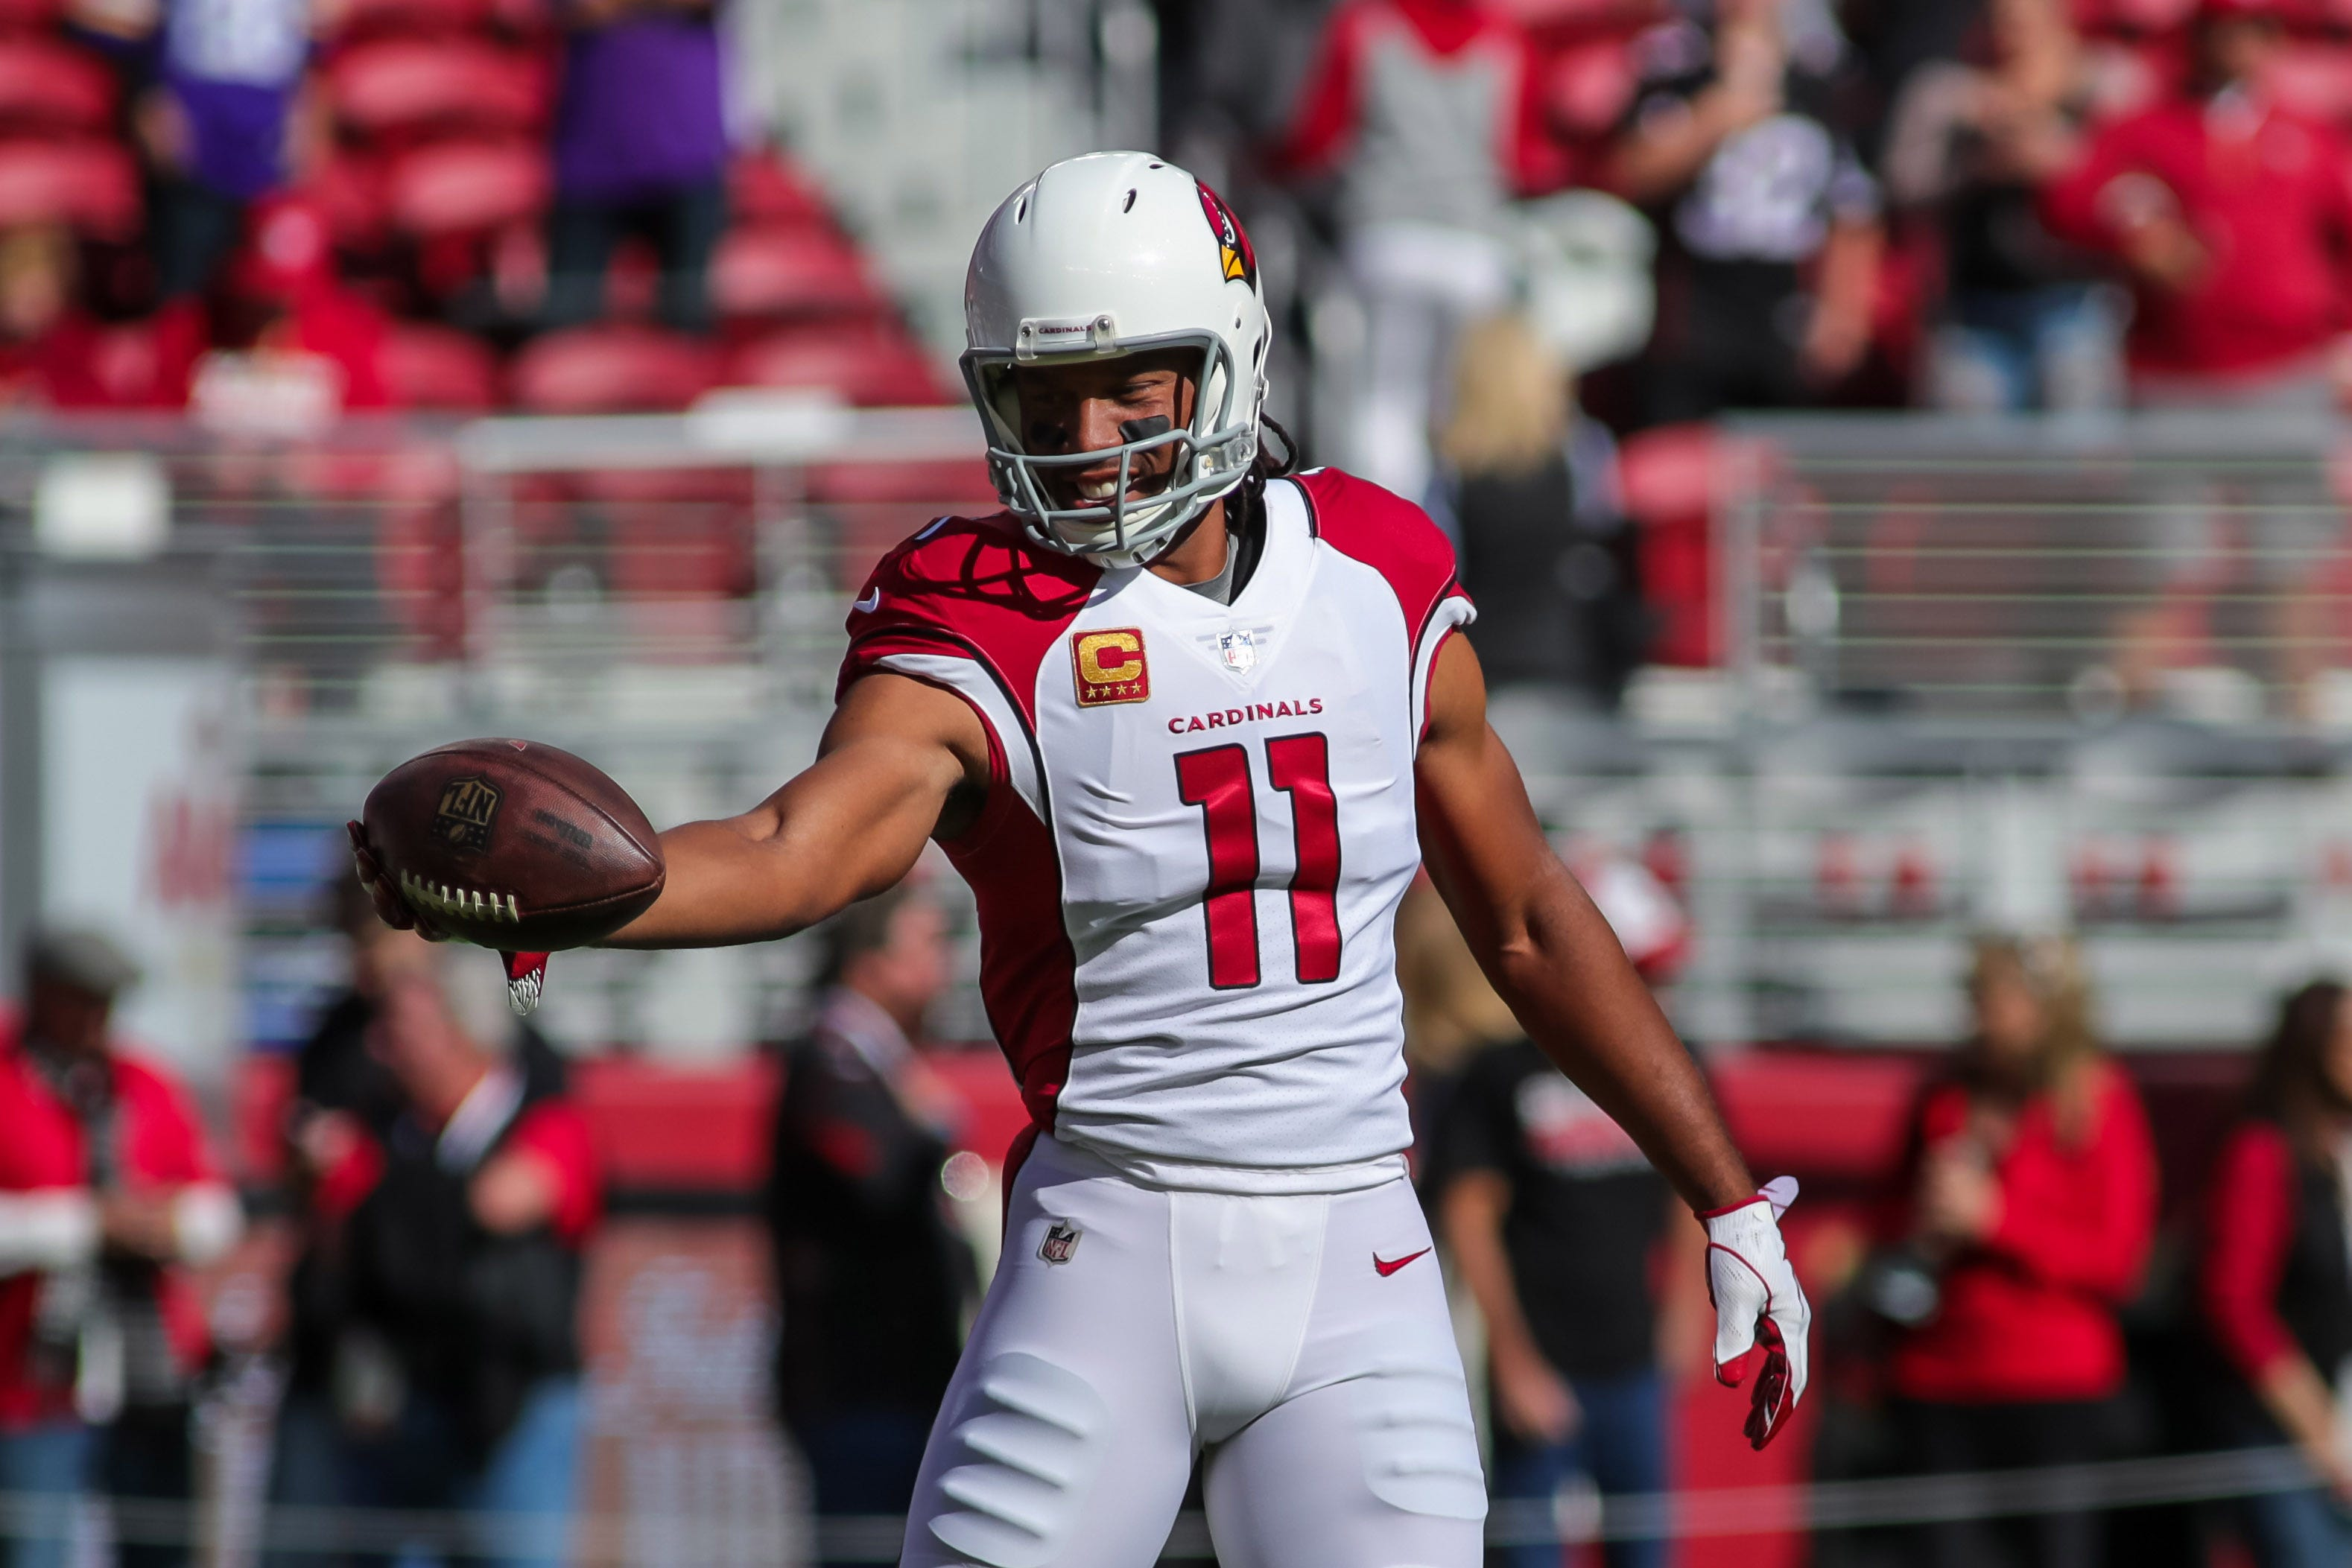 Larry Fitzgerald signs contract extension with Cardinals; 2018 status still undetermined